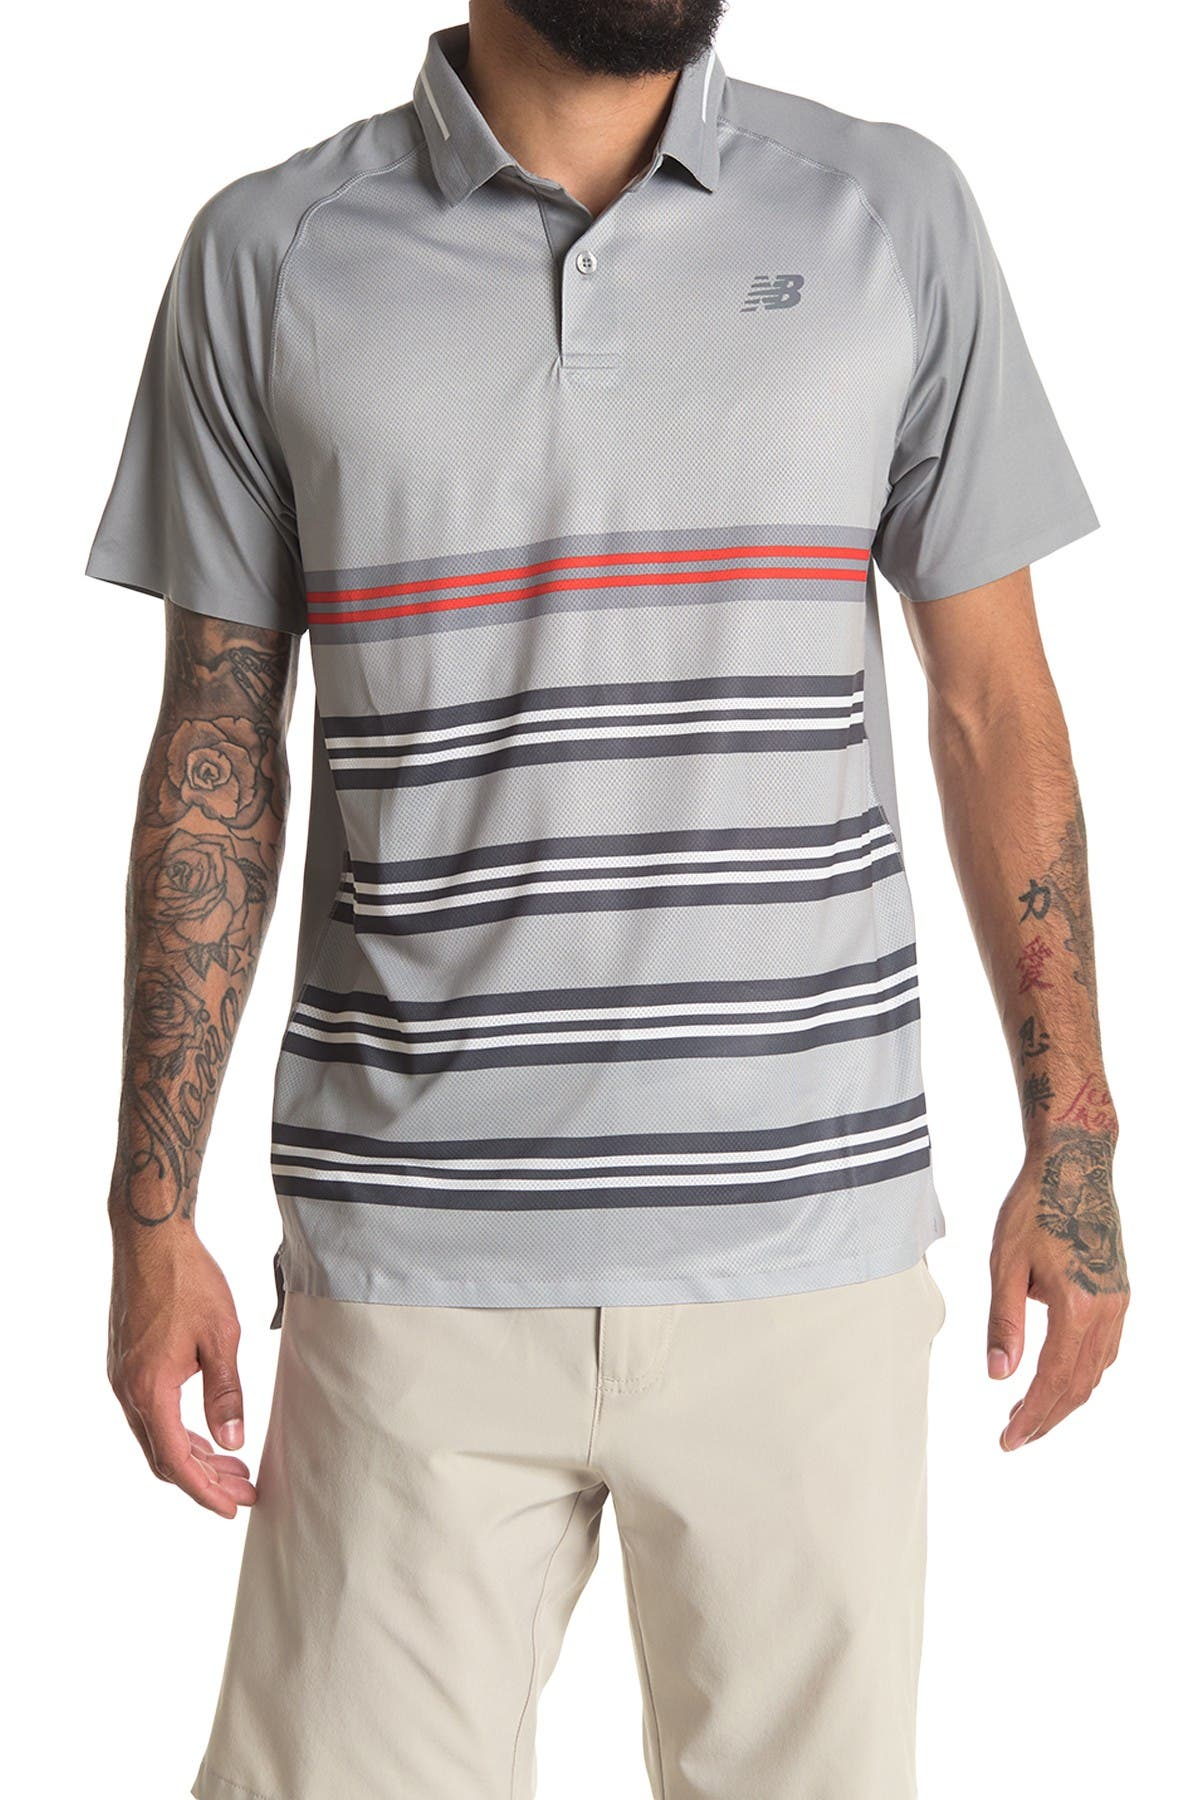 Image of New Balance Striped Tournament Polo Shirt